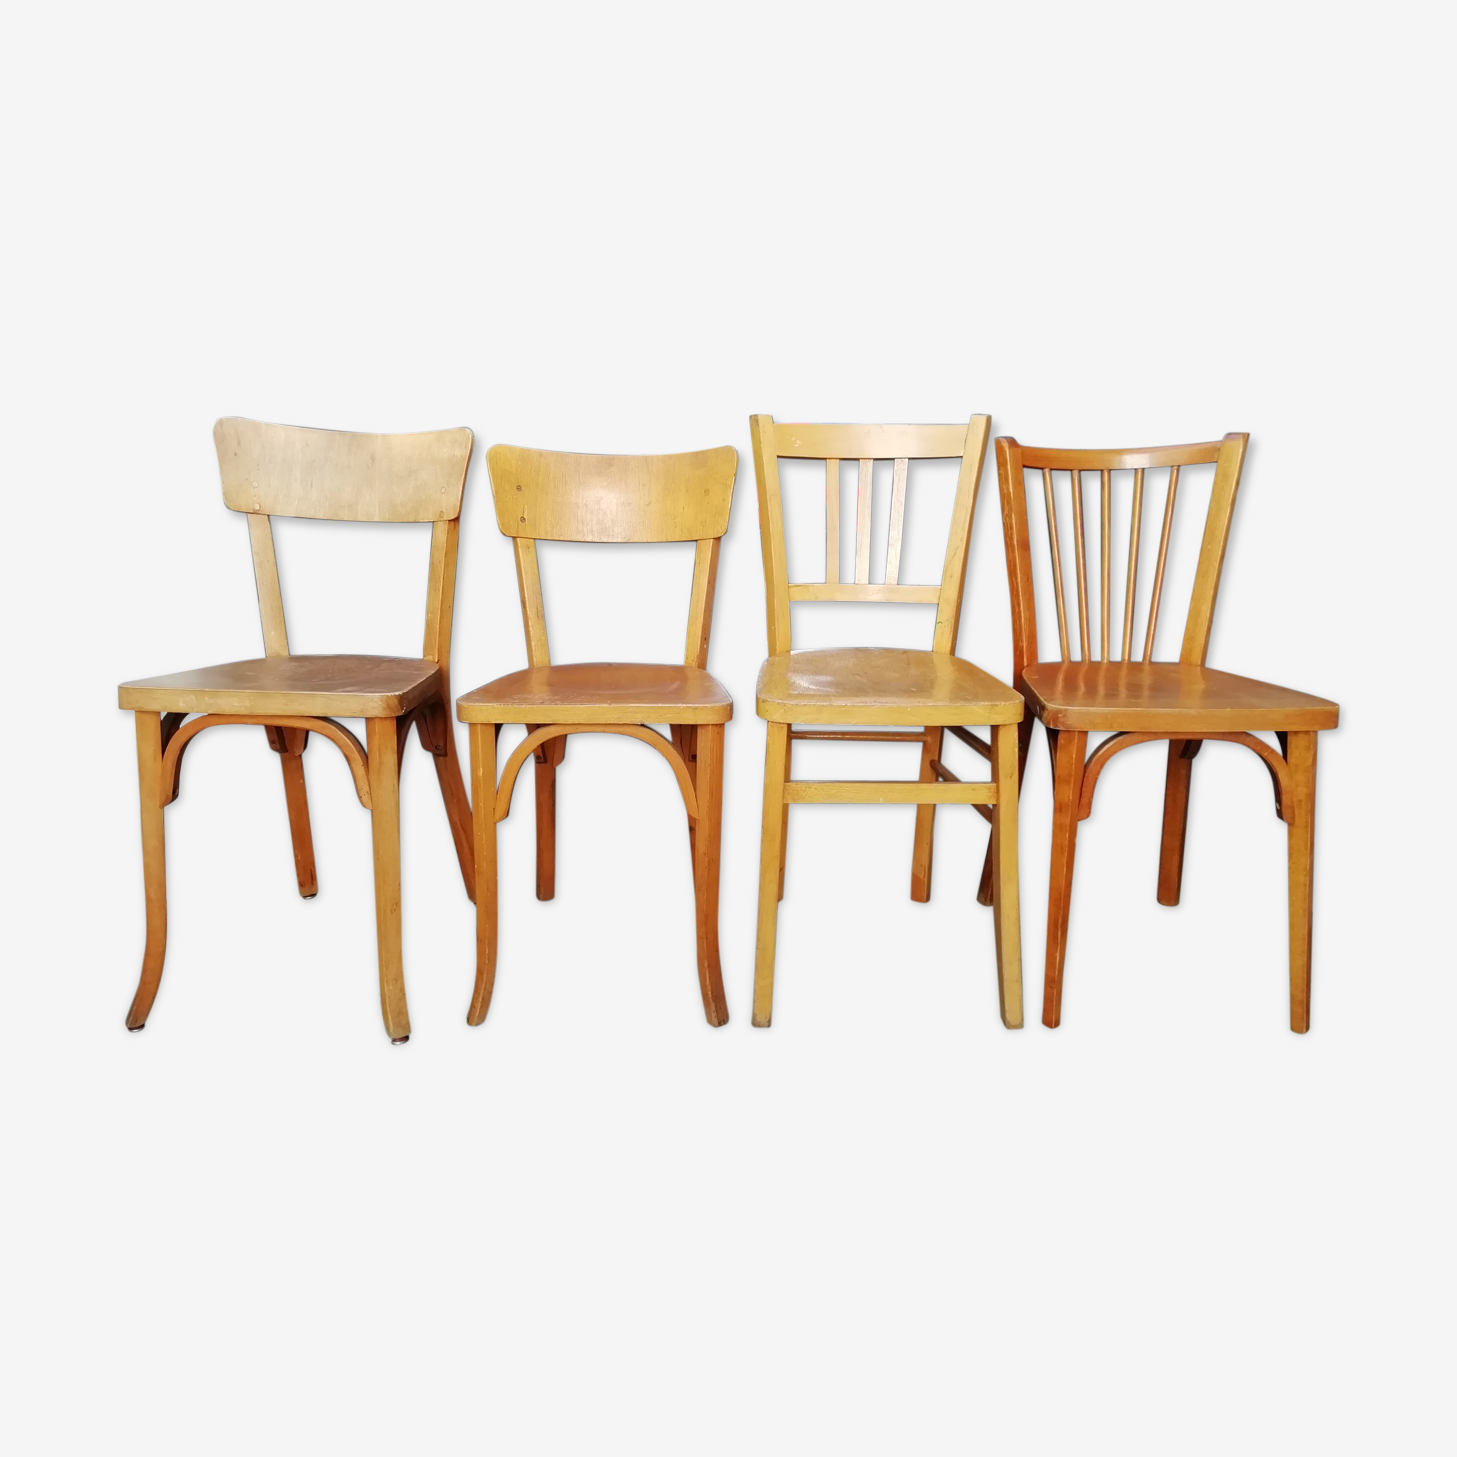 Old Bistro Baumann Luterma chairs